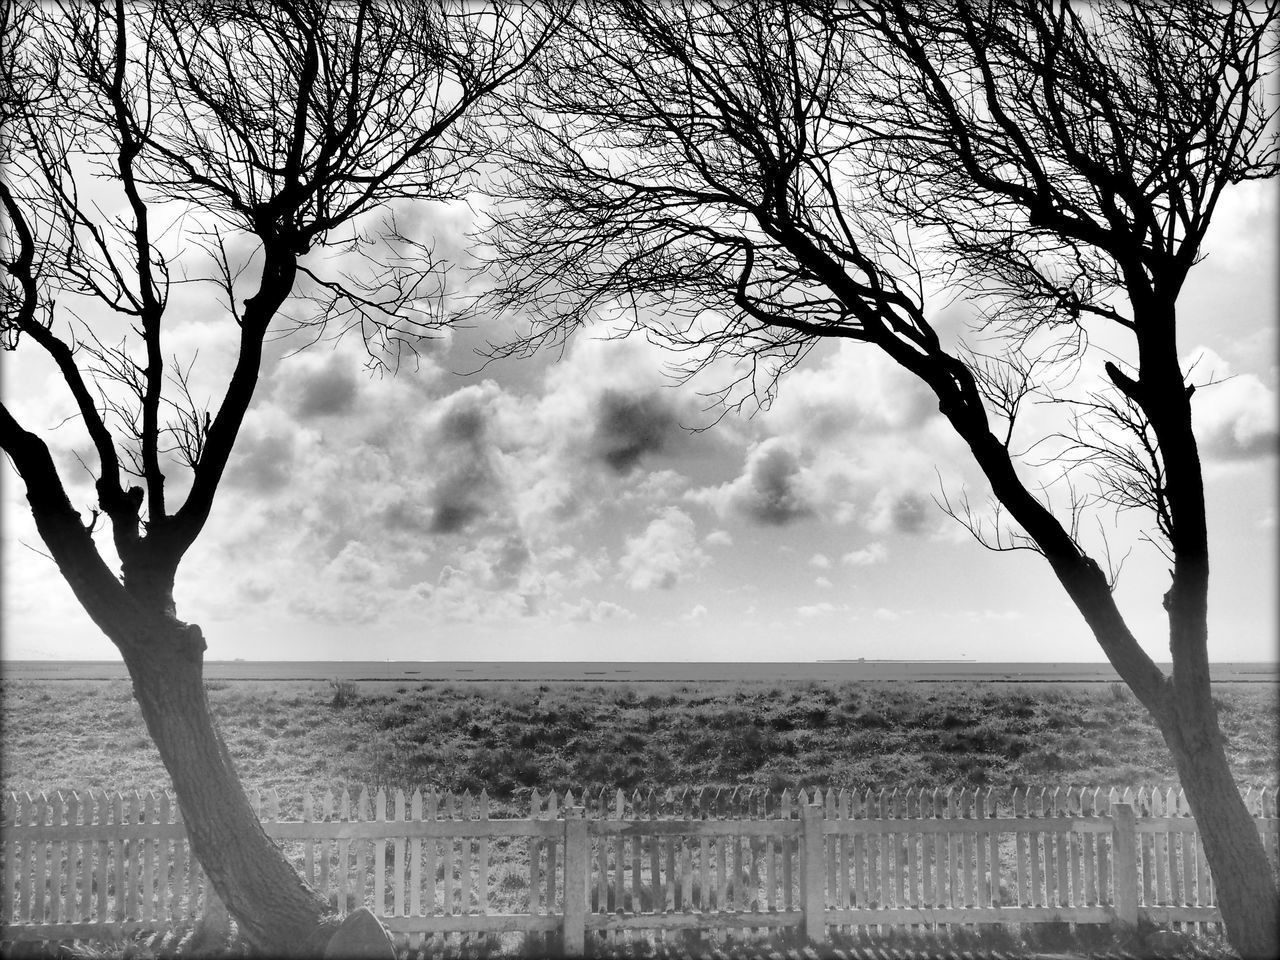 Beach Beauty In Nature Branch Cloud - Sky Day Growth Hallig Landscape Nature No People Outdoors Scenics Sea Sky Tranquility Tree